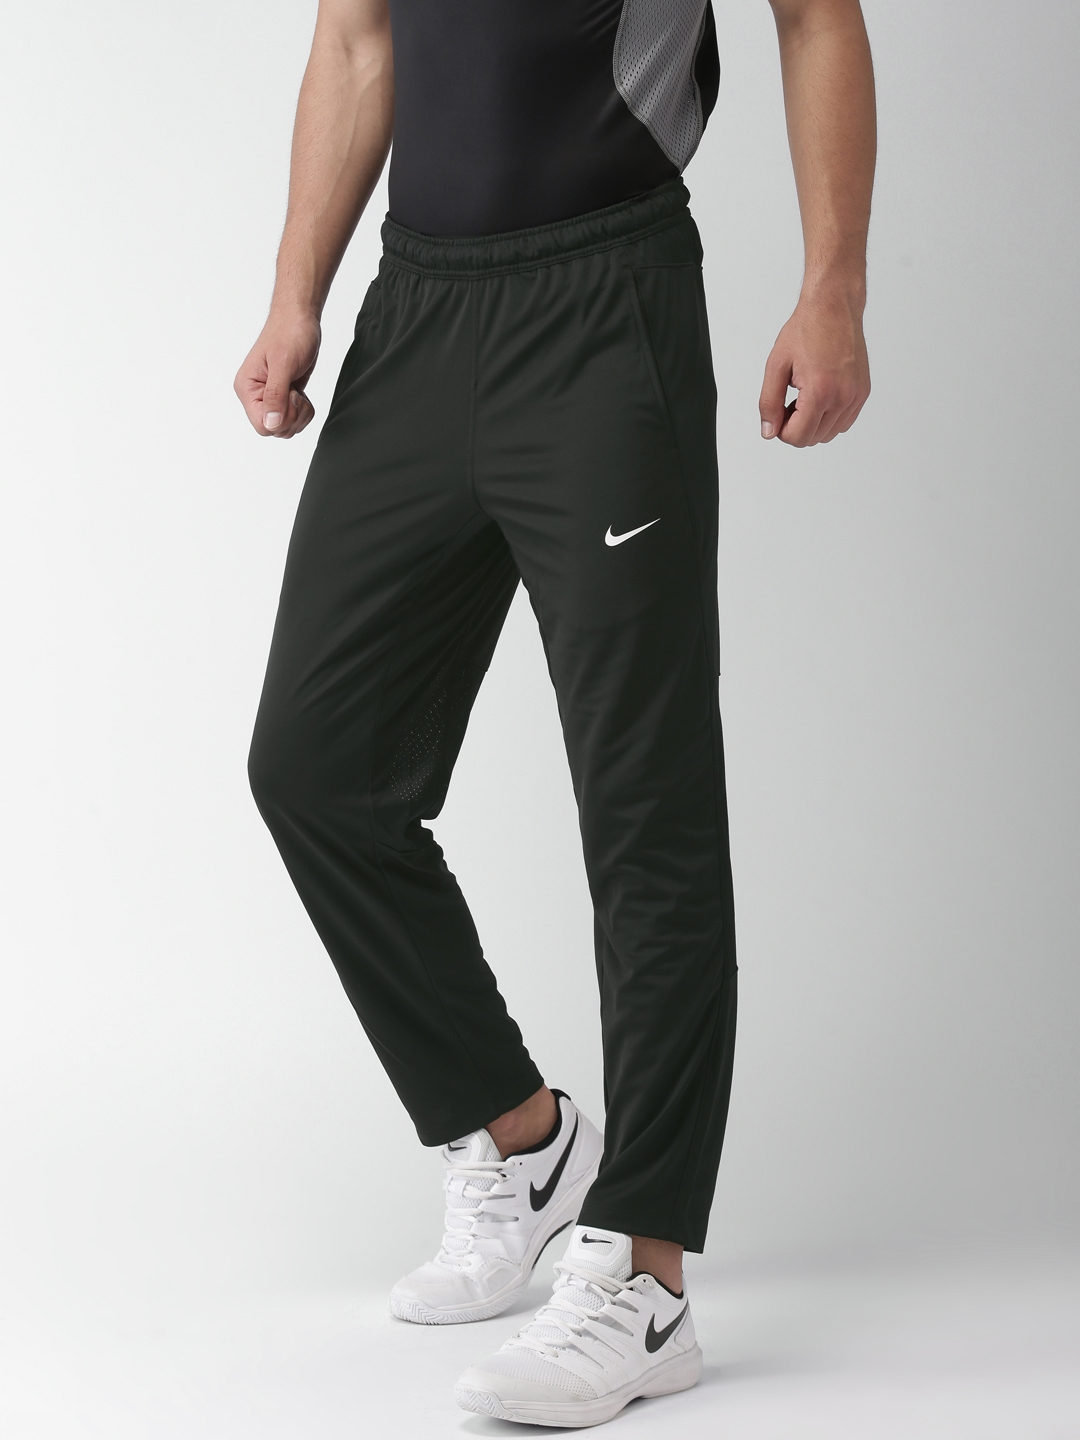 462e5178b Nike Men Black AS TS CRKT M NK DRY PANT Track Pants. This product is  already at its best price